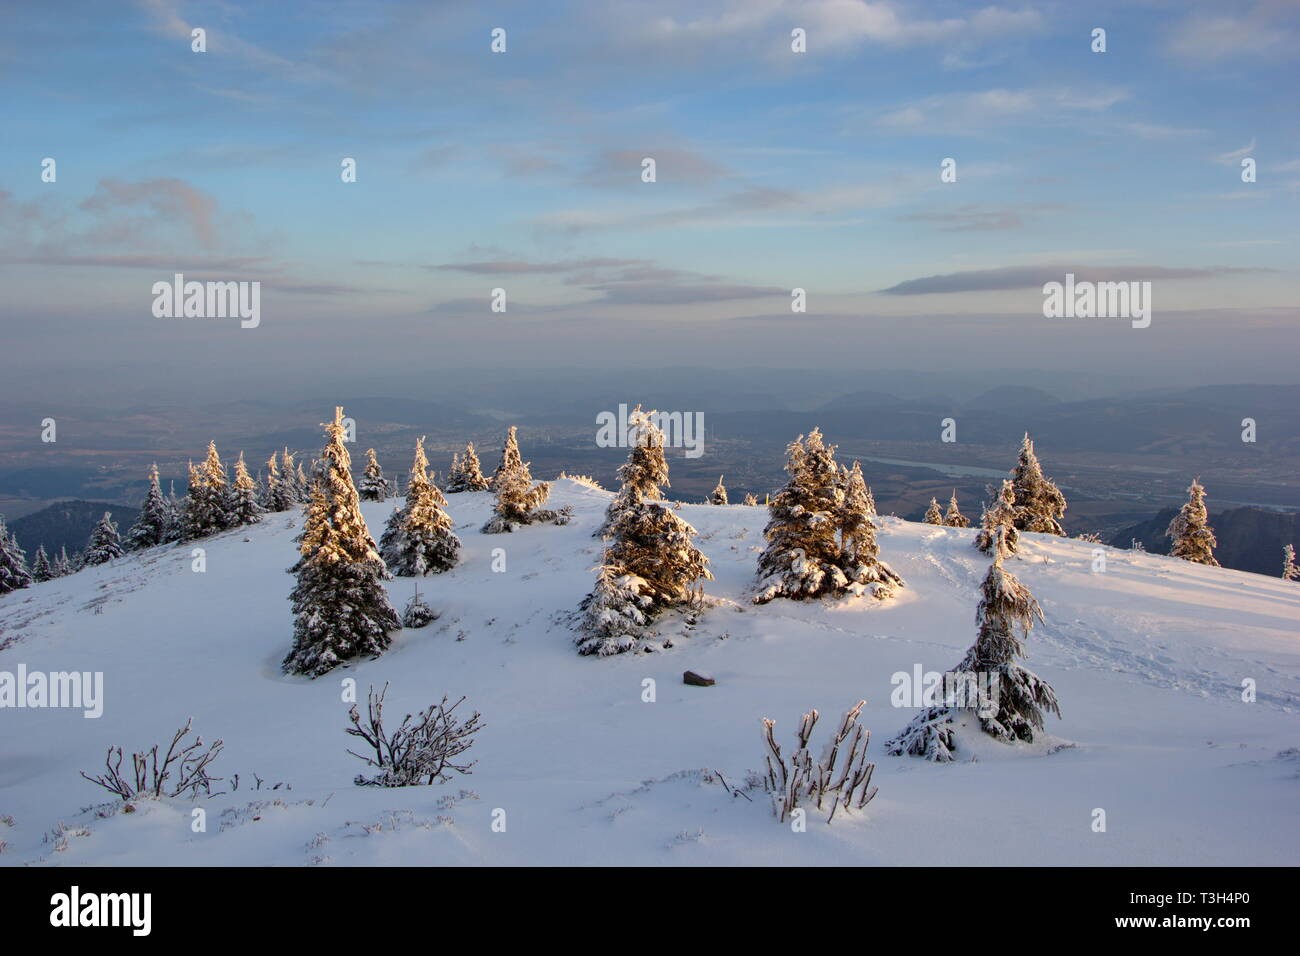 small spruces on the top of the mountain at sunrise - Stock Image